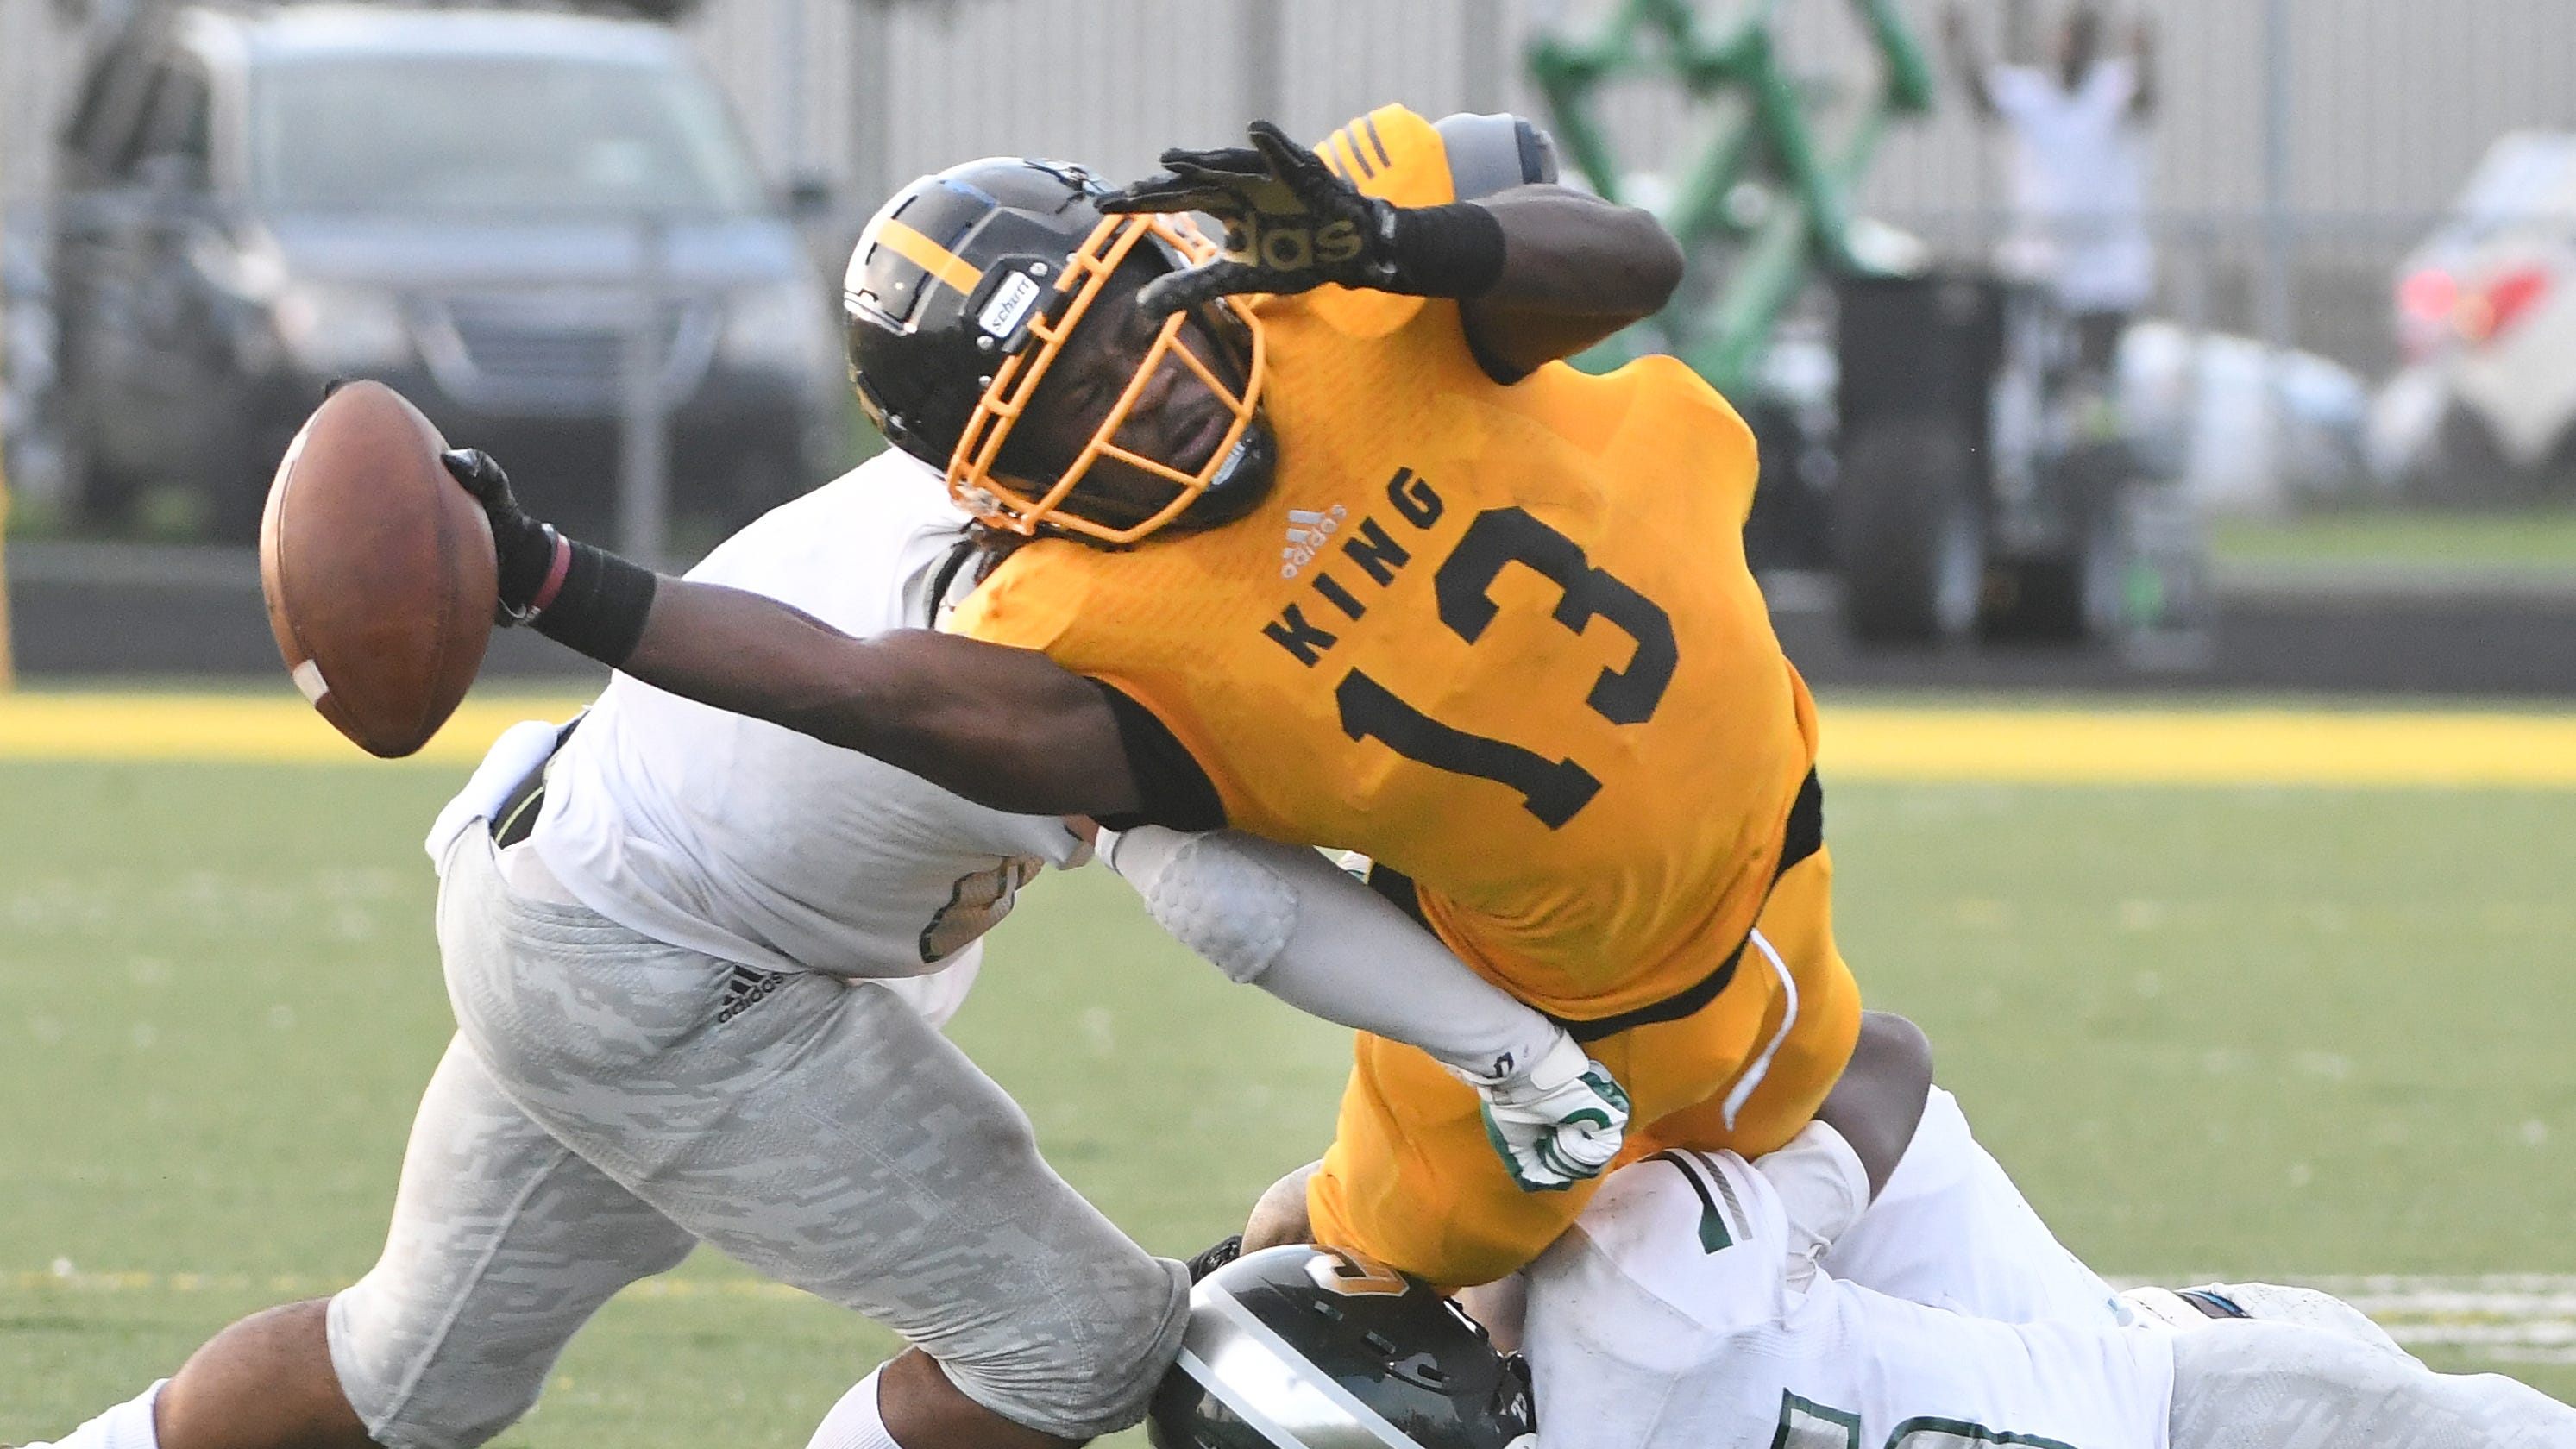 Friday's prep football: Detroit King, Dante Moore too much for Cass Tech - The Detroit News